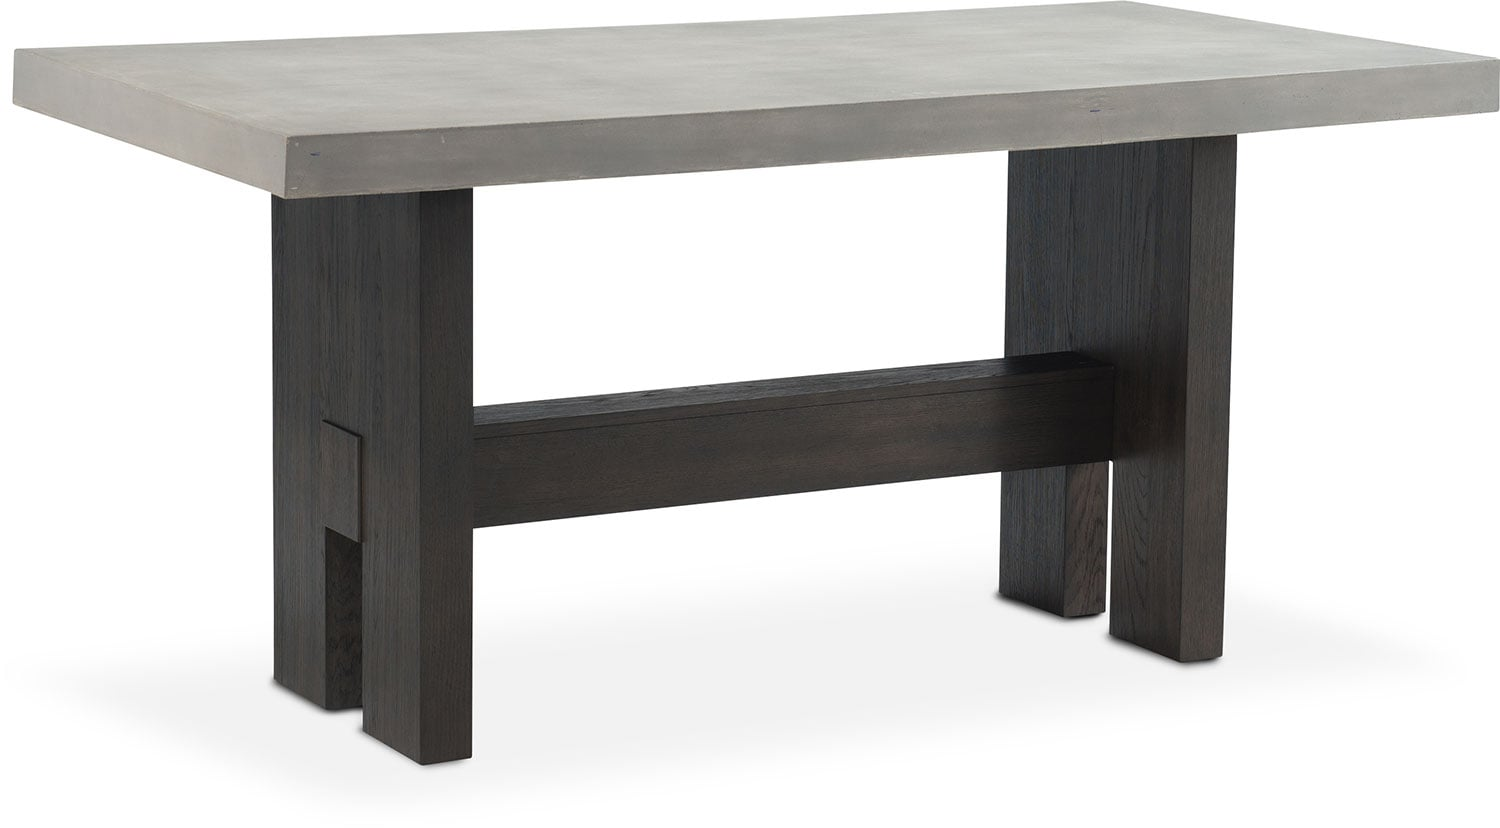 Shop All Dining Room Tables Value City Furniture : 514748 from www.valuecityfurniture.com size 1500 x 828 jpeg 73kB